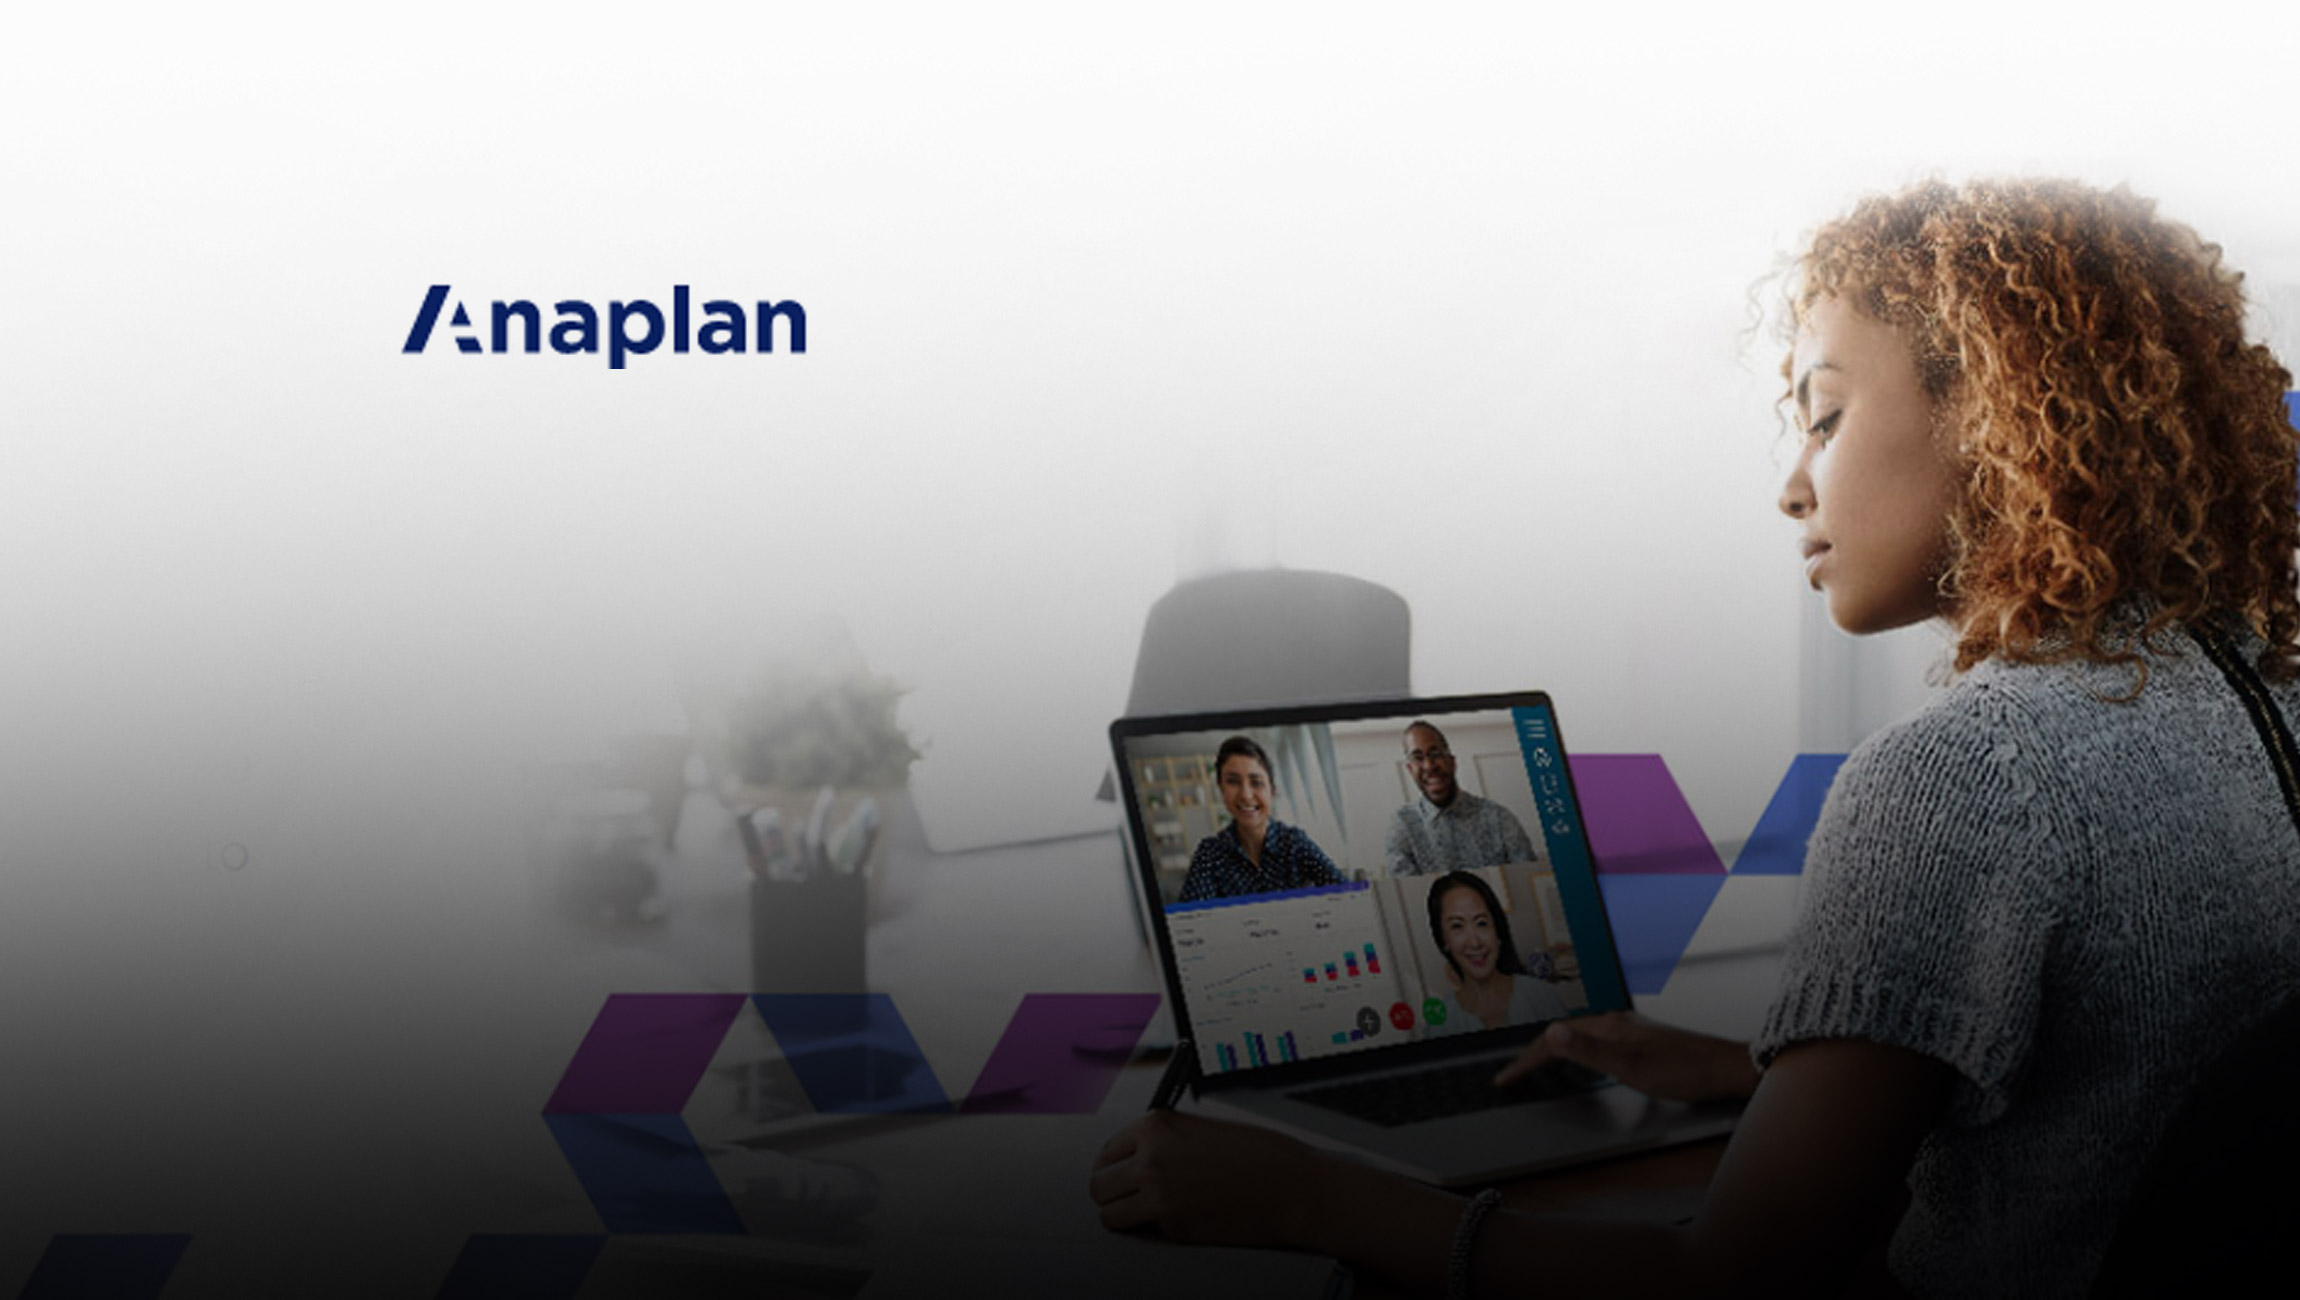 Anaplan Expands Platform With New Integration Offerings, Modeling Capabilities, and Collaboration Features